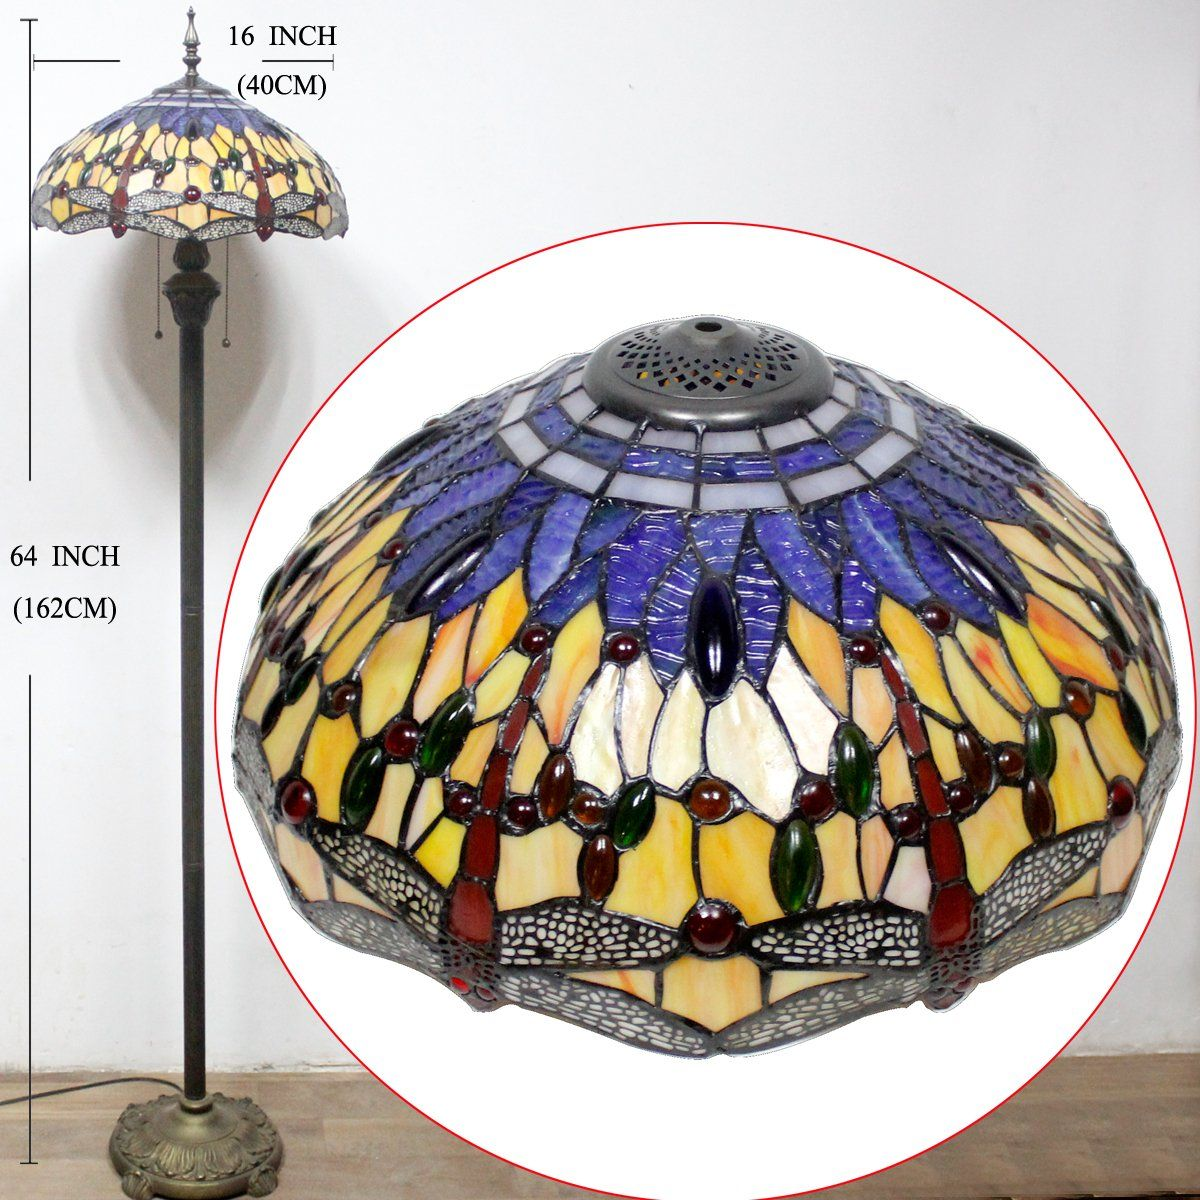 Werfactory Tiffany Lamp Floor Reading Light 64 Inch Tall Blue Yellow Dragonfly Lampshade For Living Room Go To The Pic Lamp Lamp Shade Floor Standing Lamps